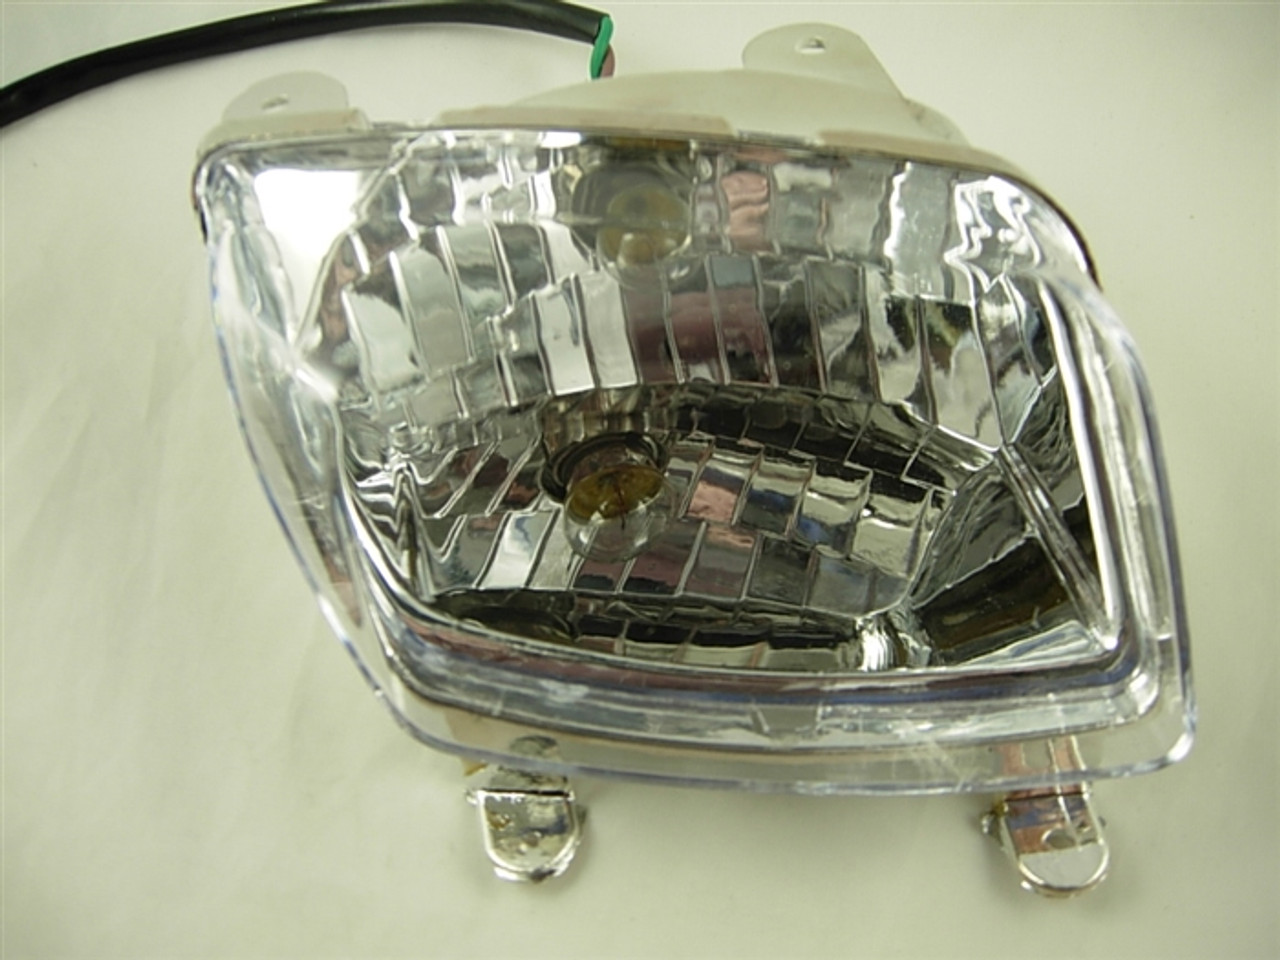 HEADLIGHT ASSEMBLY (RIGHT SIDE) 10811-A46-1